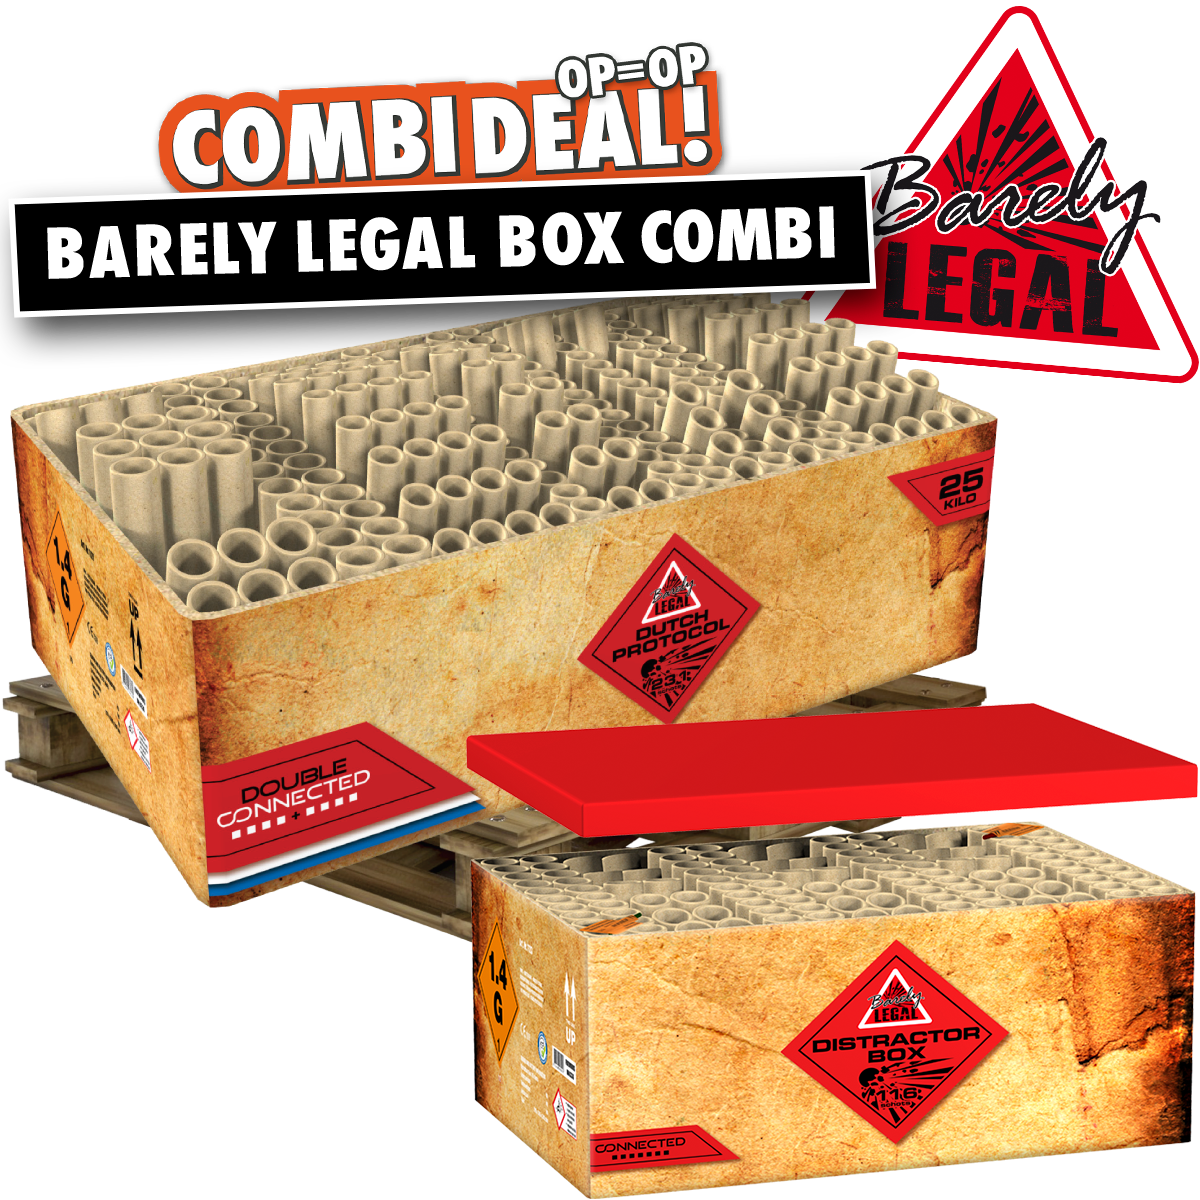 Combi deal Barely legal box combi